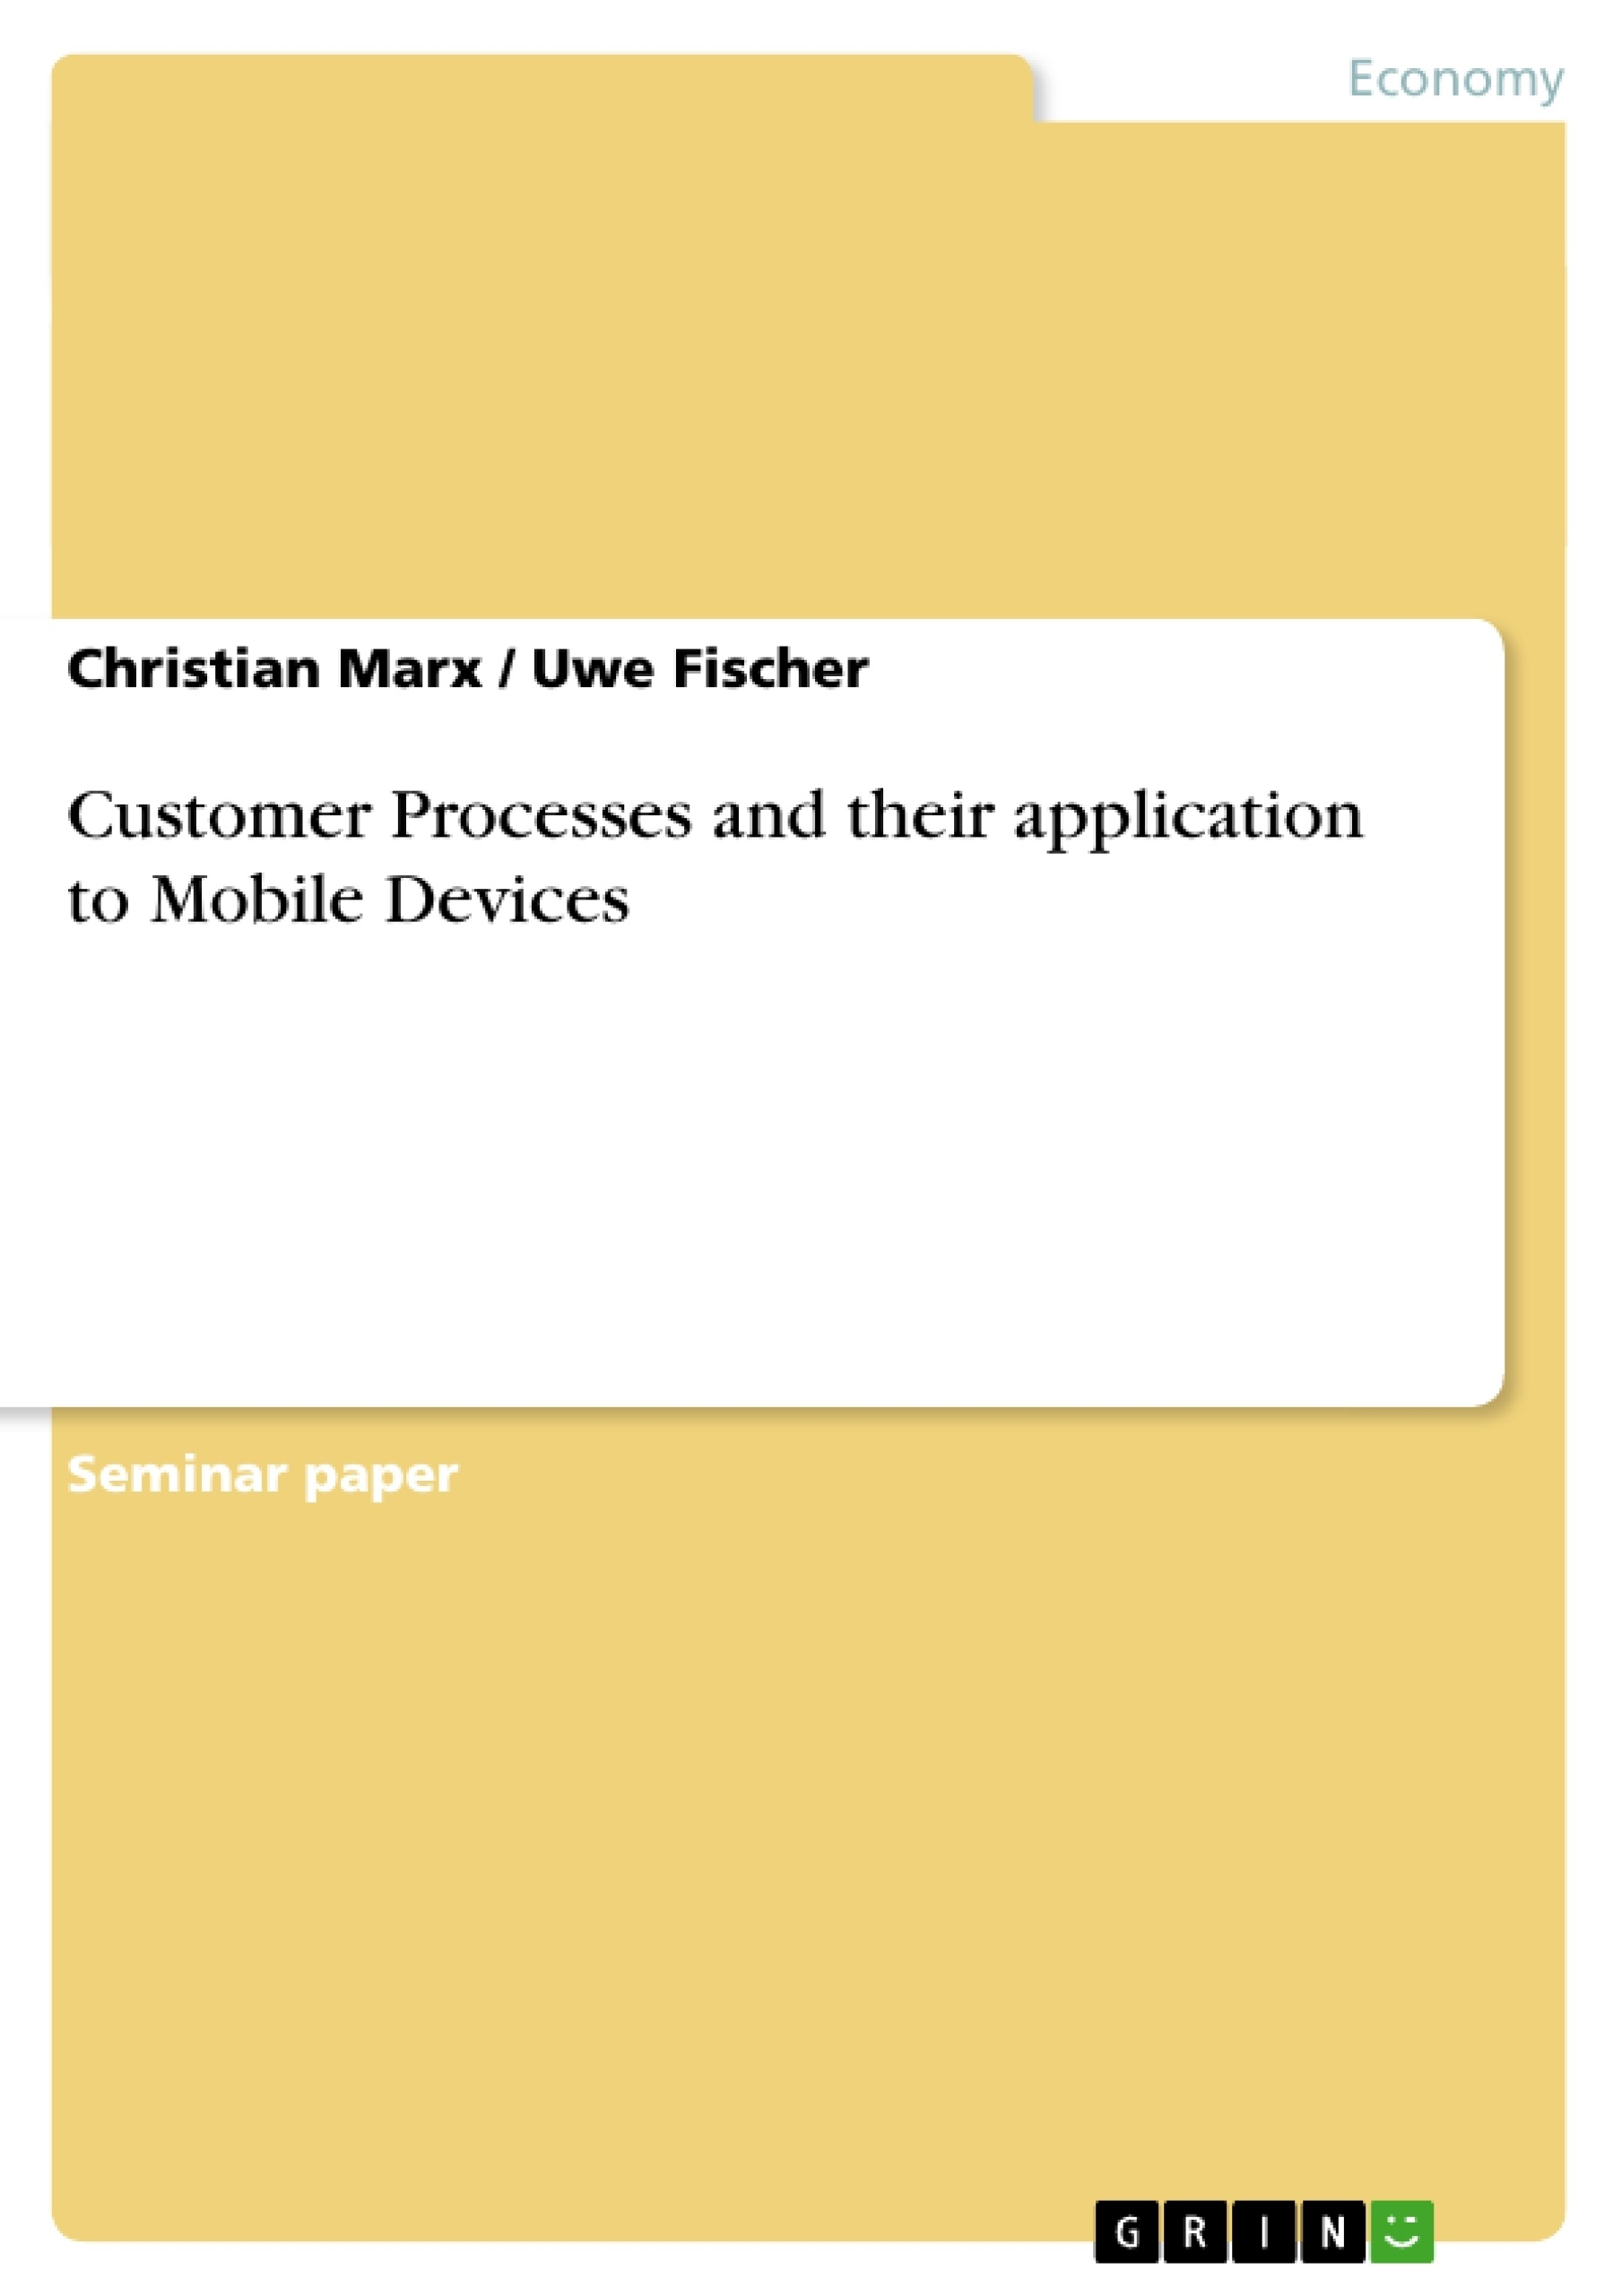 Title: Customer Processes and their application to Mobile Devices